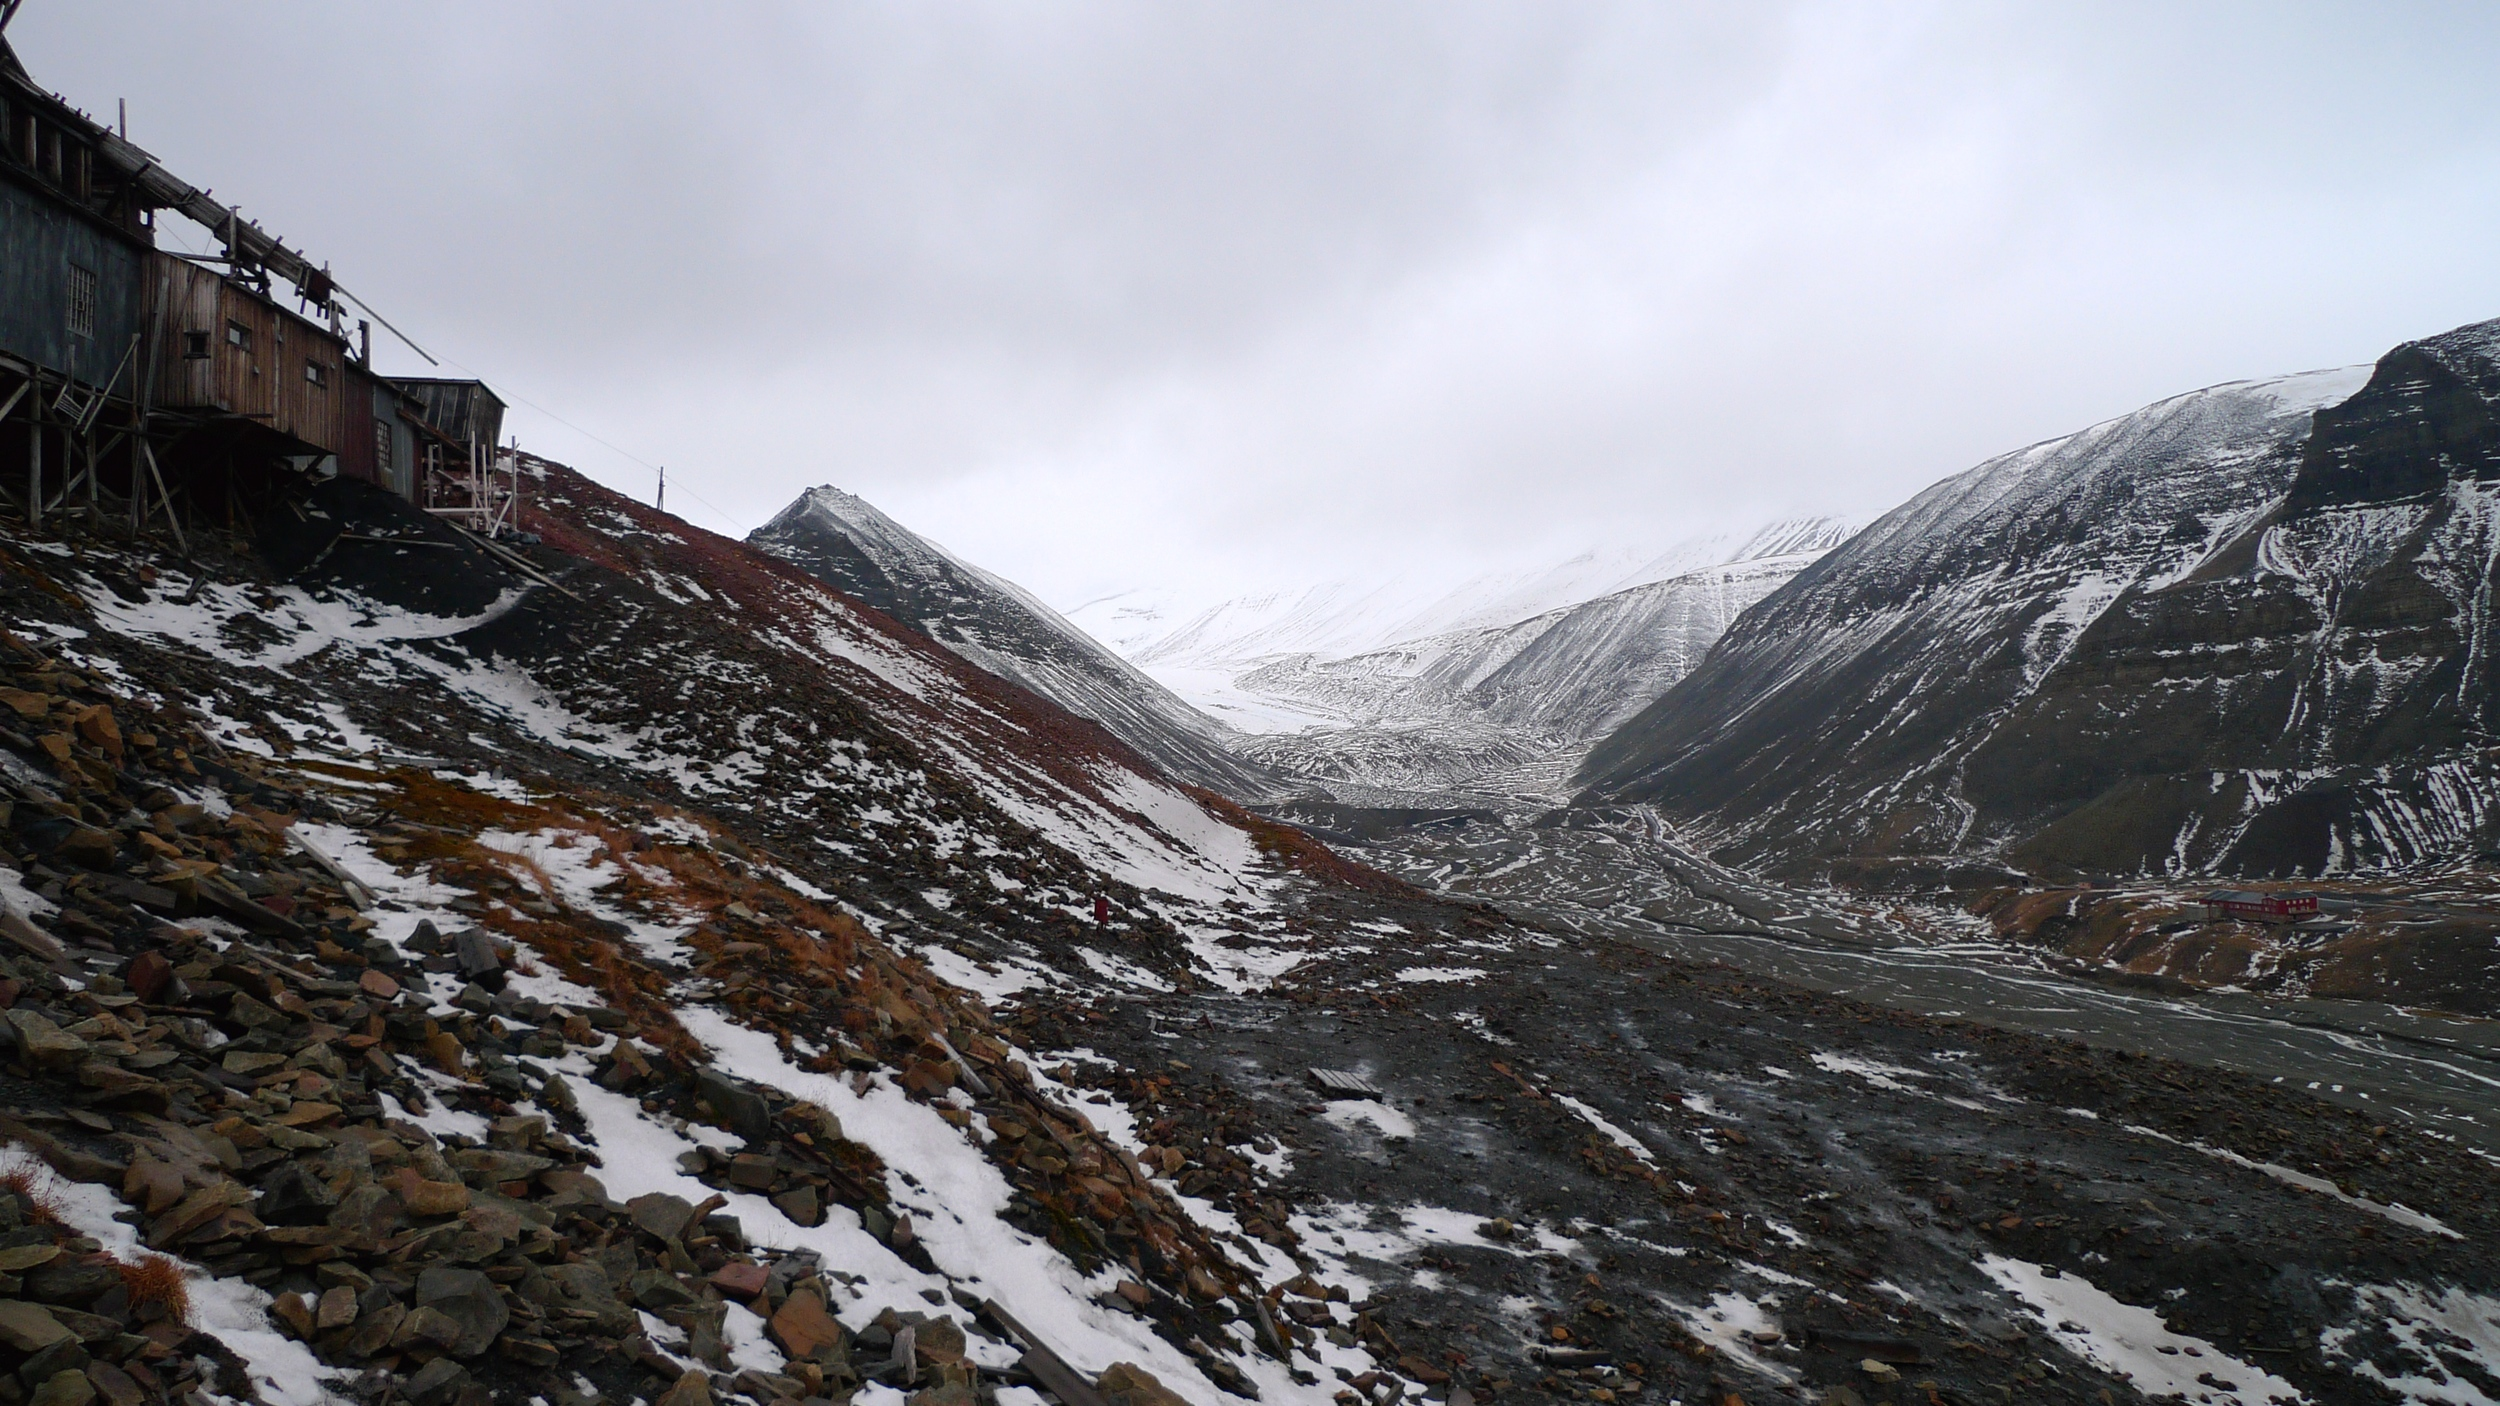 View up the valley towards Larsglacier